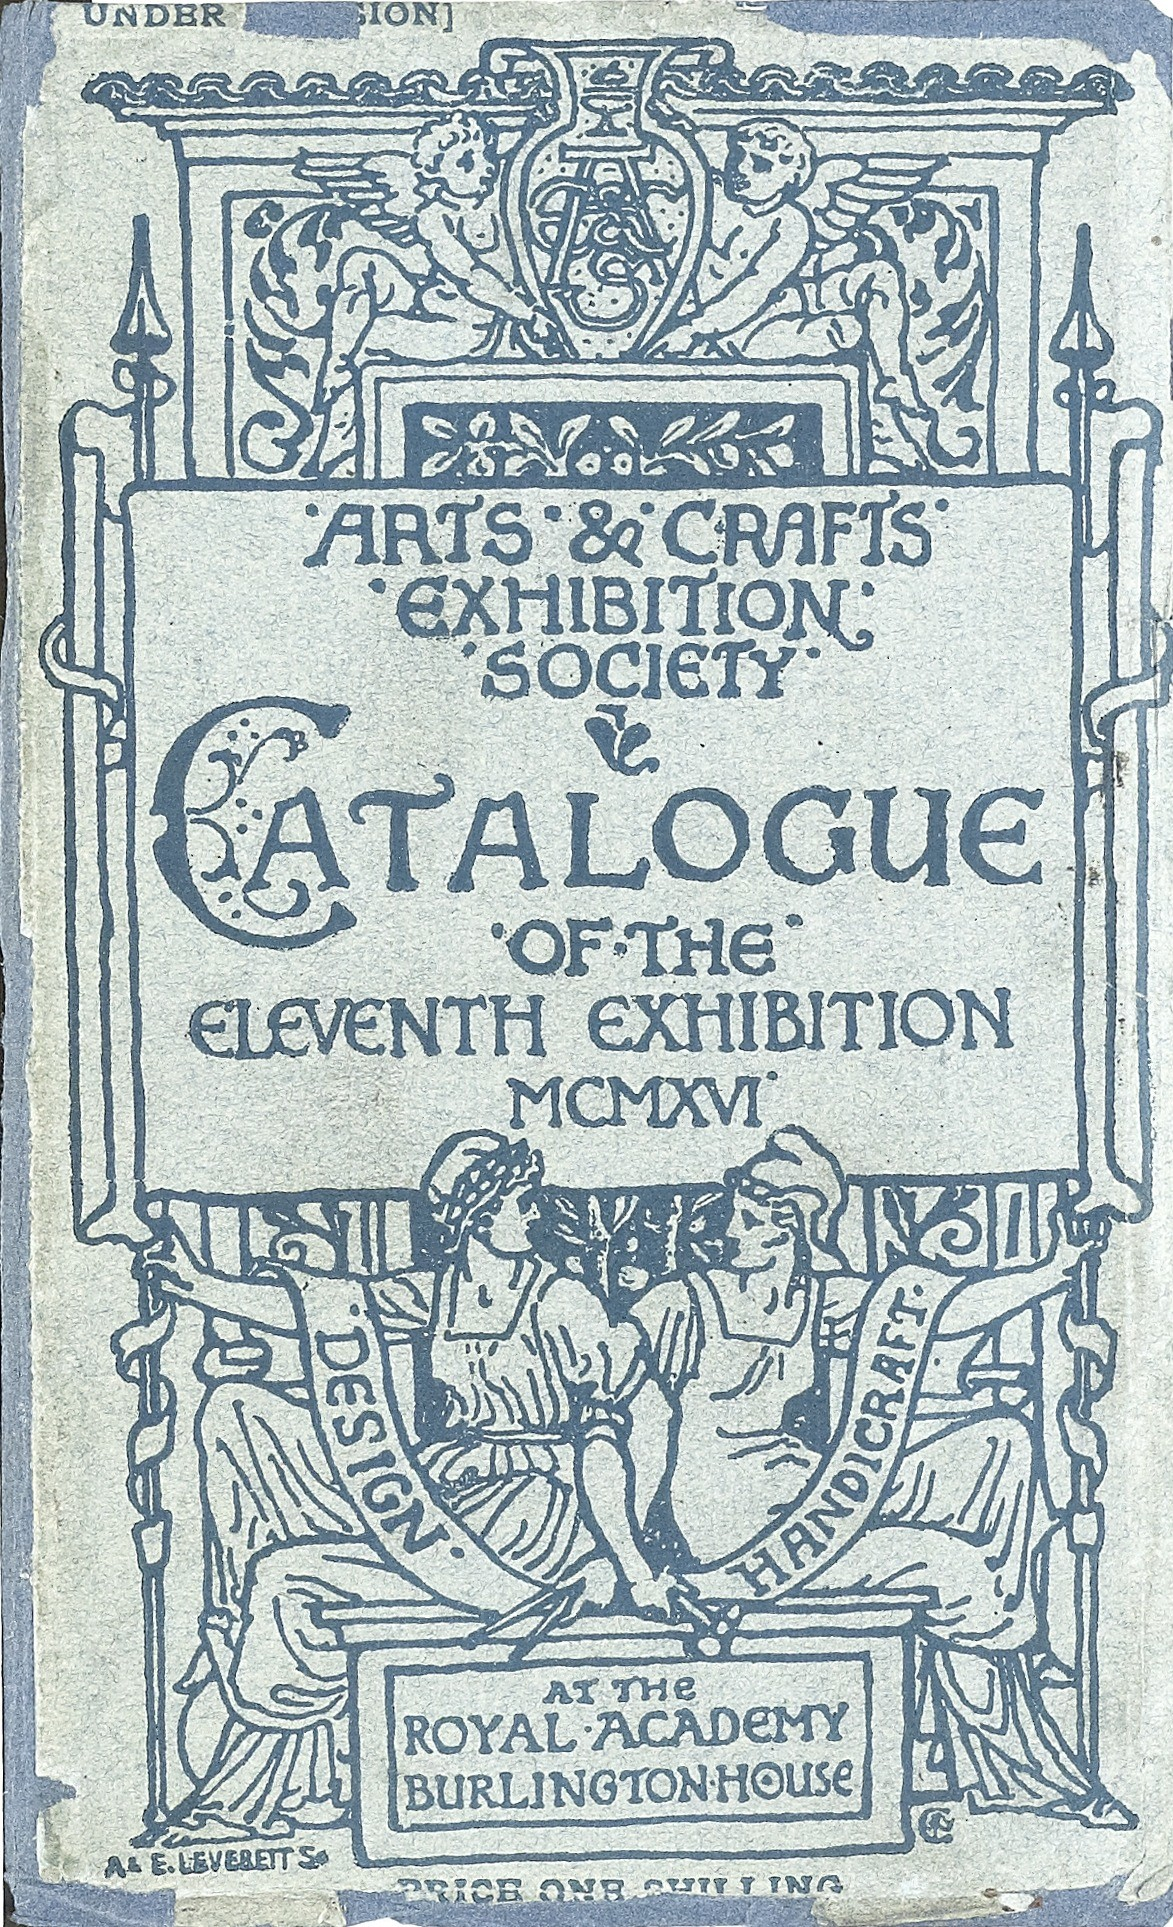 1916 Arts Crafts Exhibition Society Eleventh Exhibition Exhibition Catalogues Ra Collection Royal Academy Of Arts